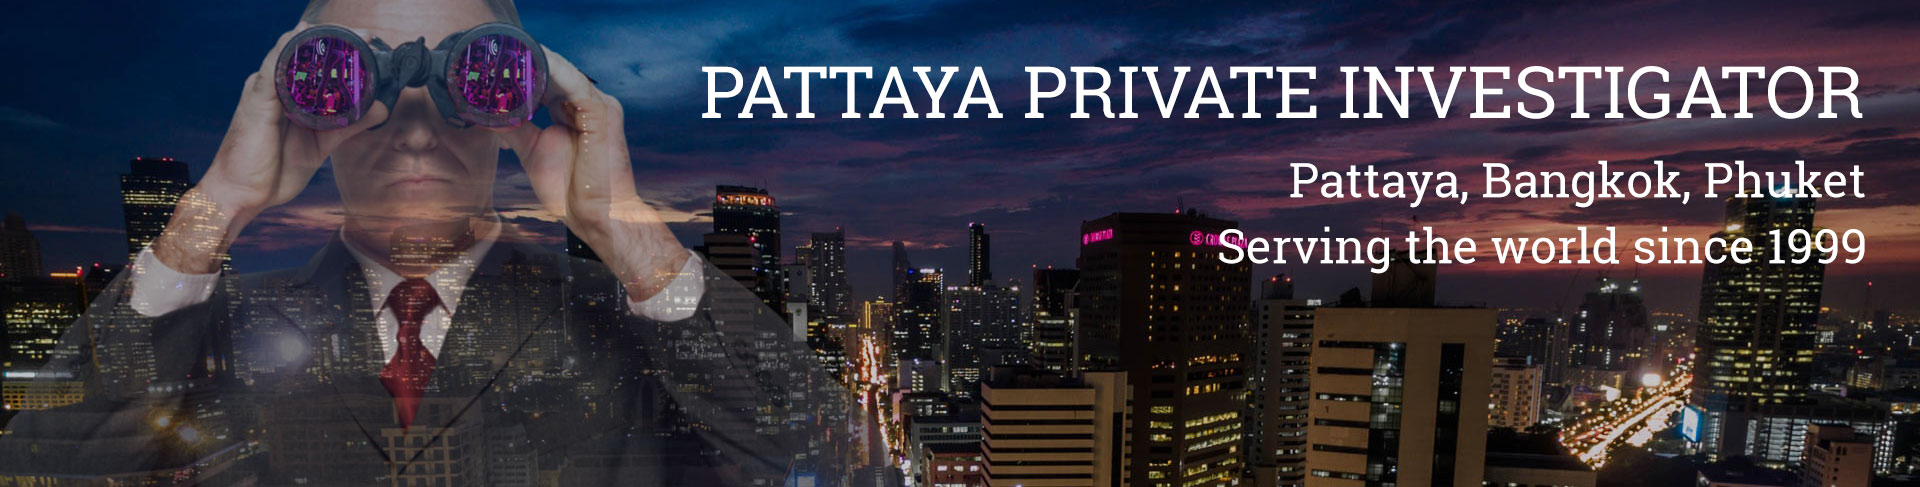 Pattaya Private Investigator